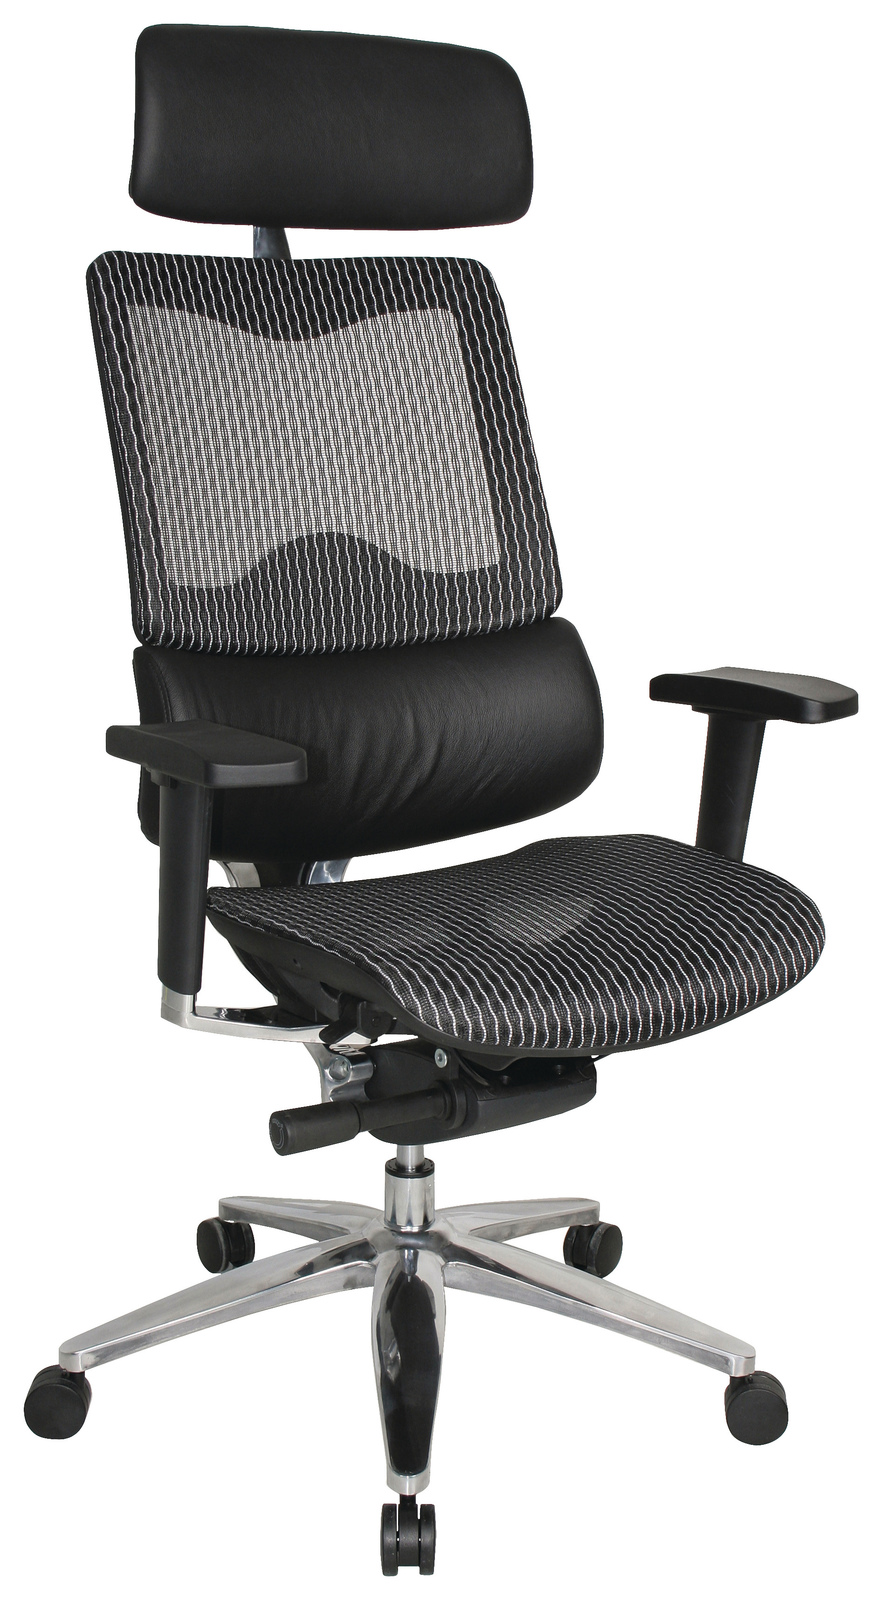 Croxley Tokyo Executive Mesh Back Chair (Black Leather) image